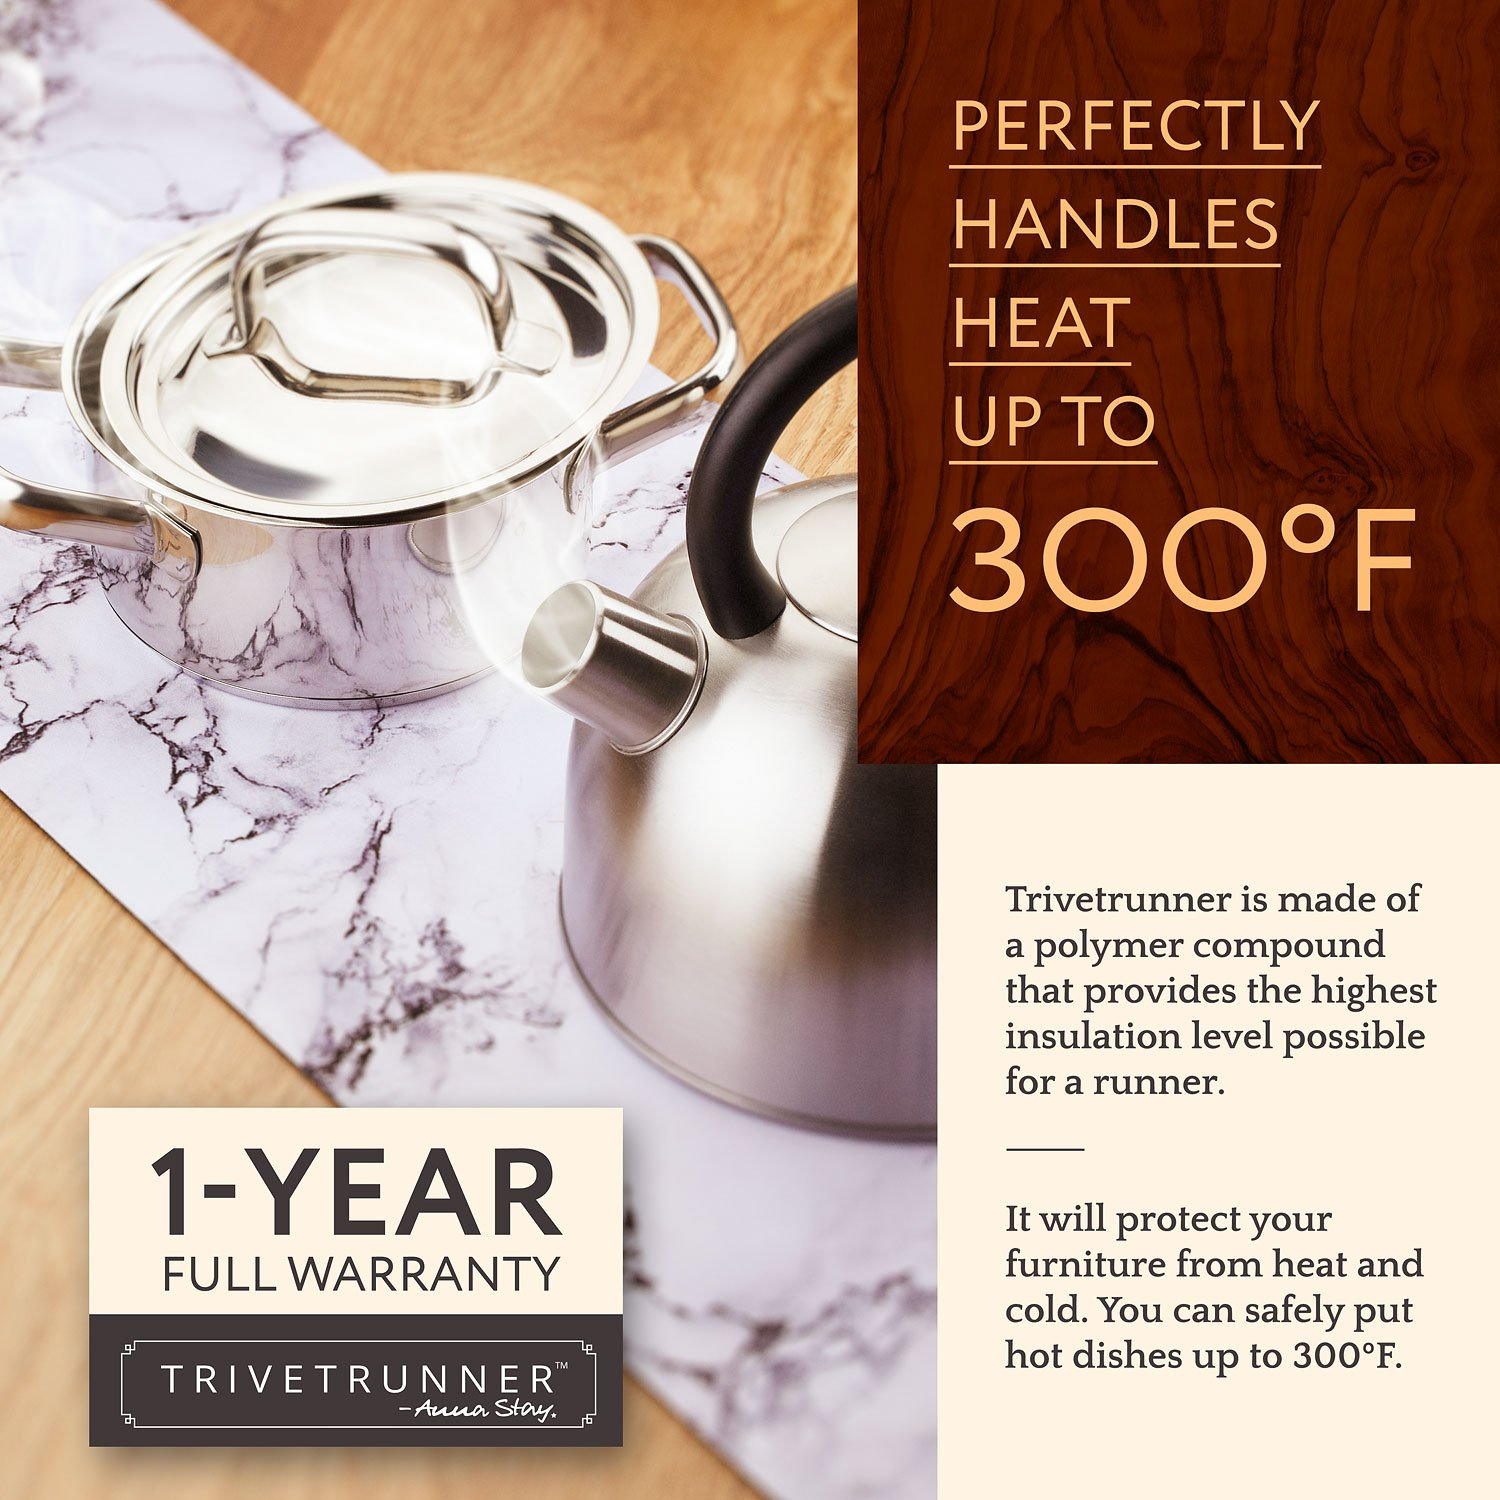 TRIVETRUNNER Decorative Trivet and Kitchen Table Runners Handles Heat Up to 300F, Anti Slip, Hand Washable, and Convenient for Hot Dishes and Pots,Hand Washable (White Marble) by TRIVETRUNNER (Image #2)